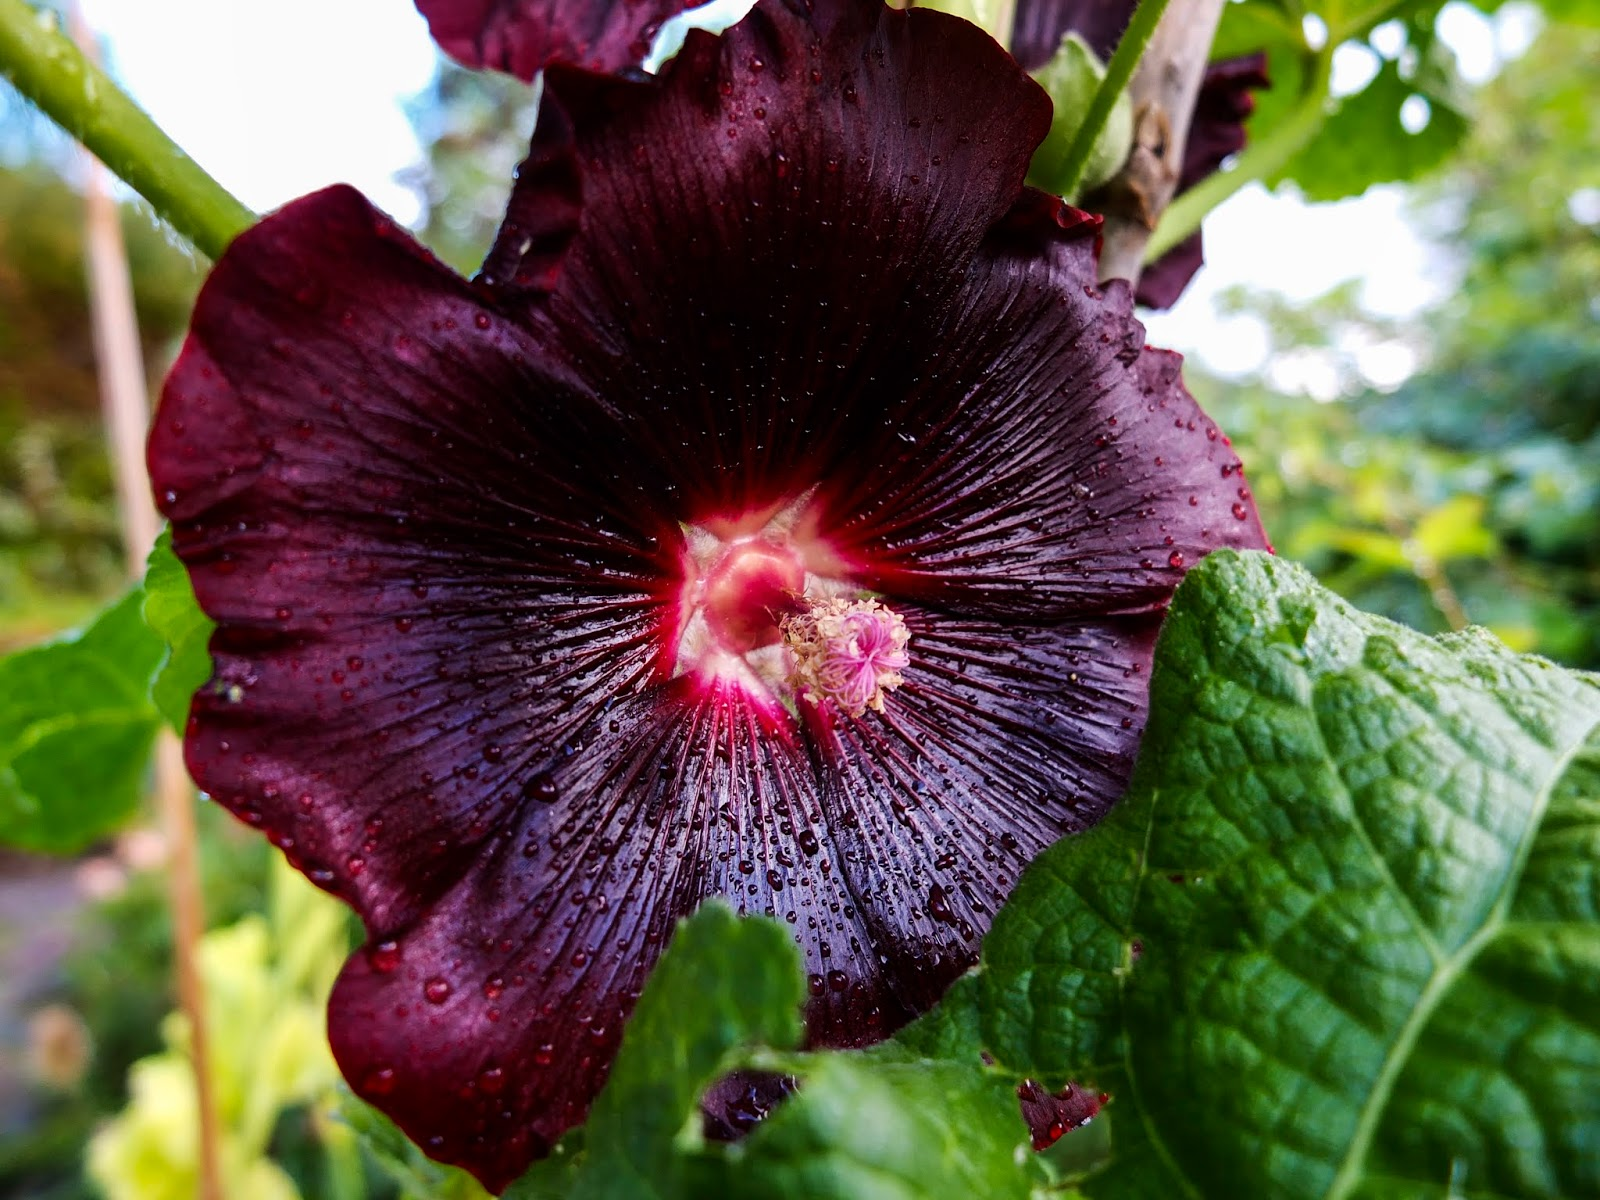 A close up of a dark purple Hollyhock flower on a stem.